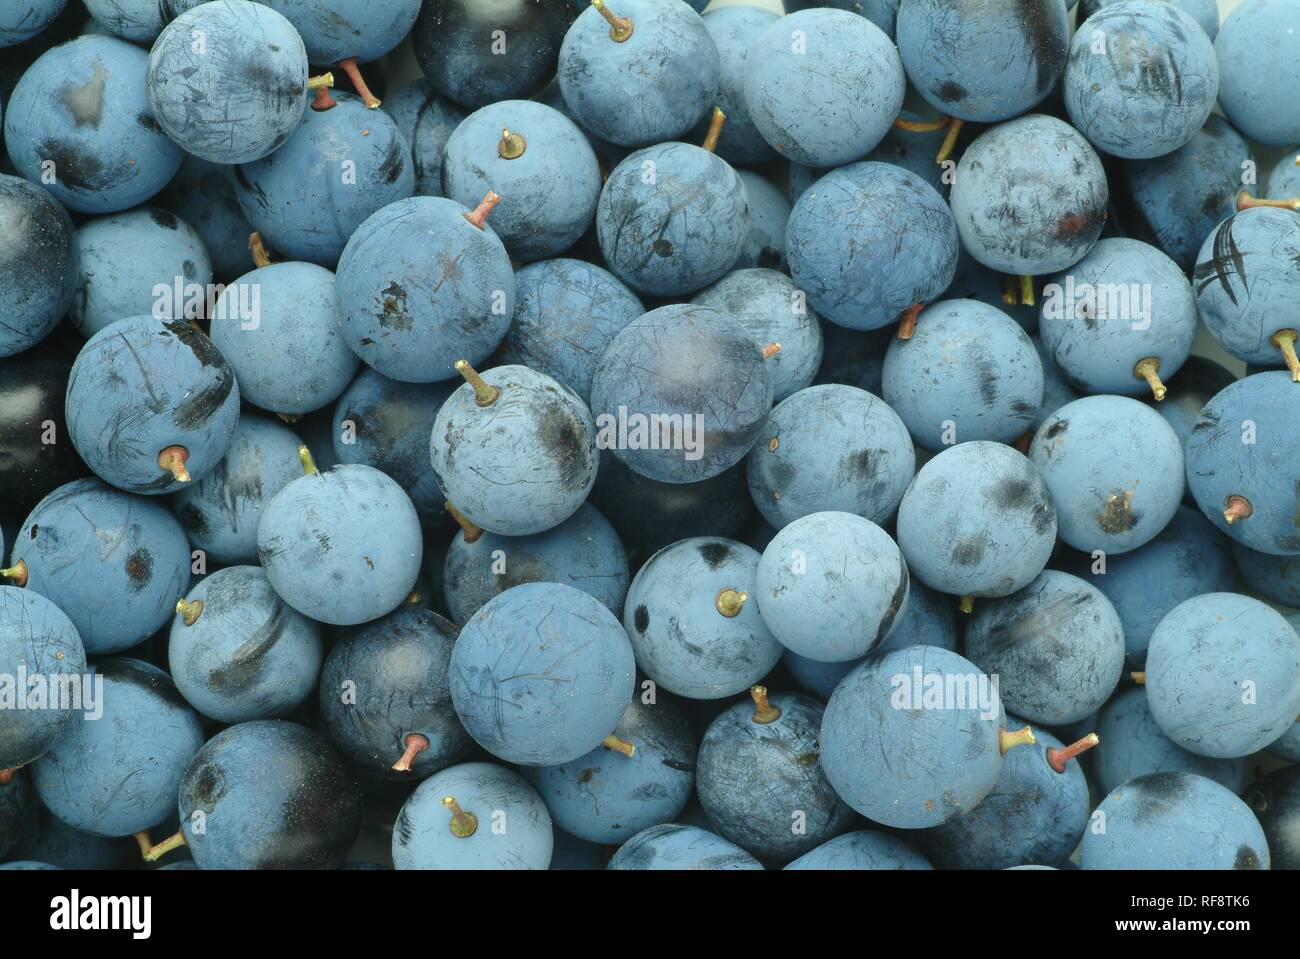 Produce, Blackthorns or Sloes (Prunus spinosa) - Stock Image